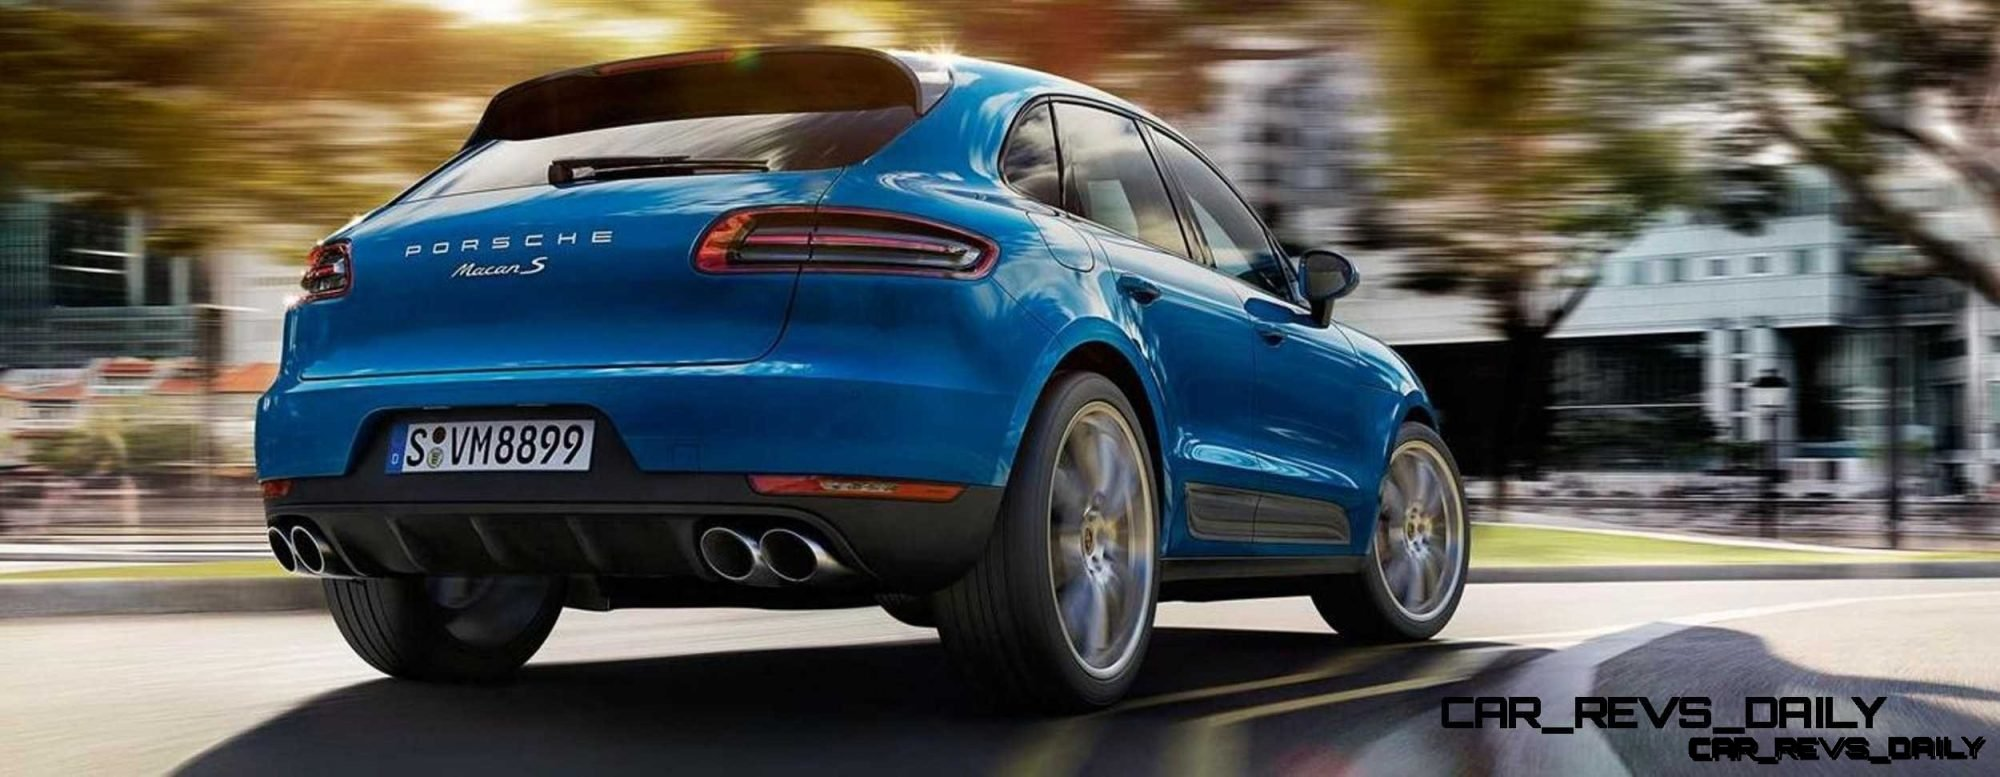 2015 Porsche Macan - Latest Images - CarRevsDaily.com 48